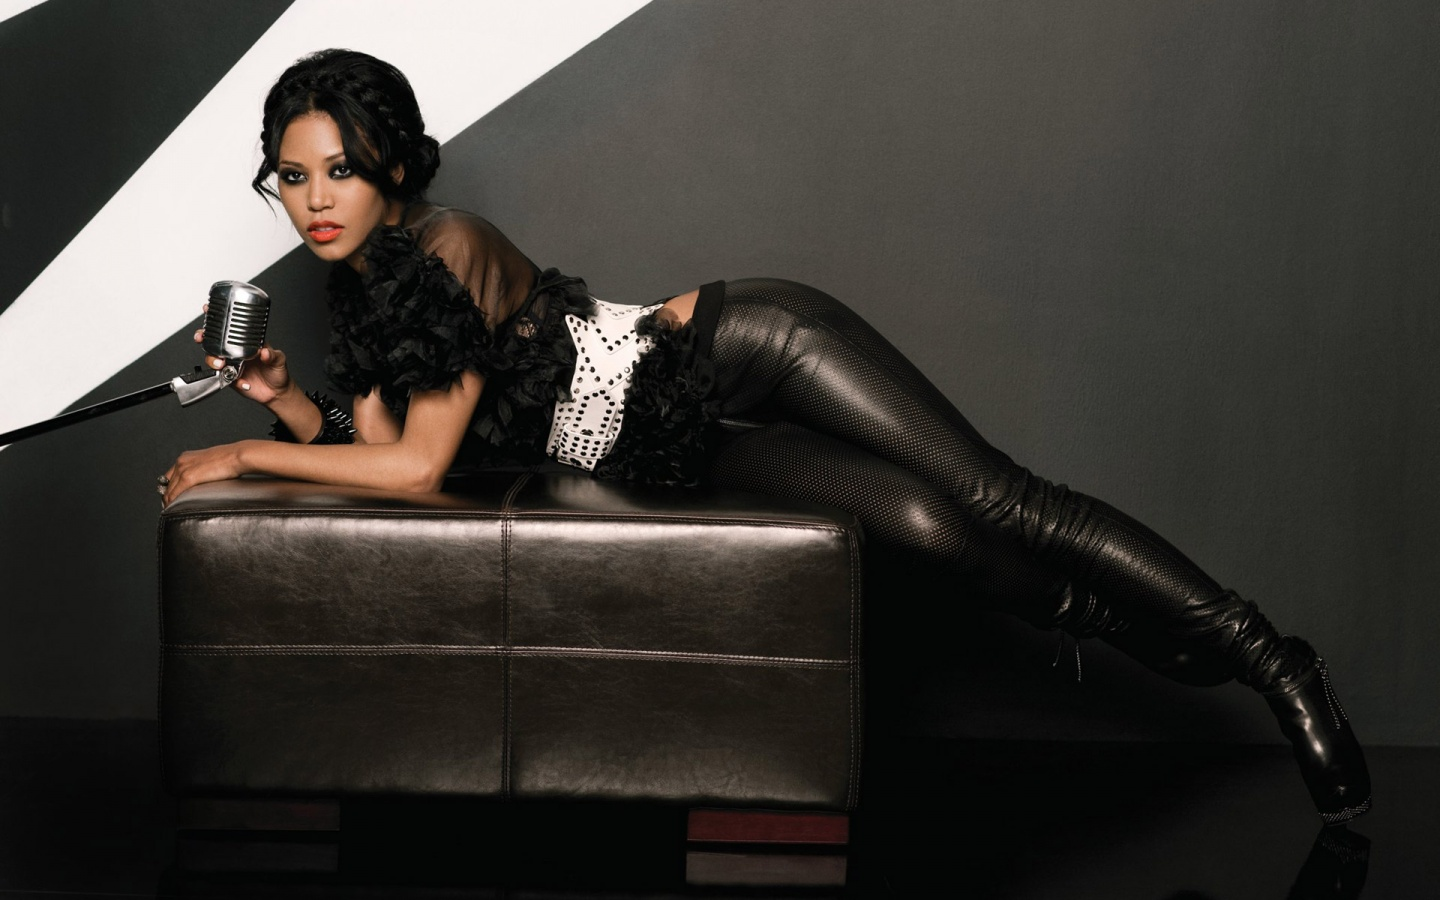 1440x900 Amerie wallpaper, music and dance wallpapers